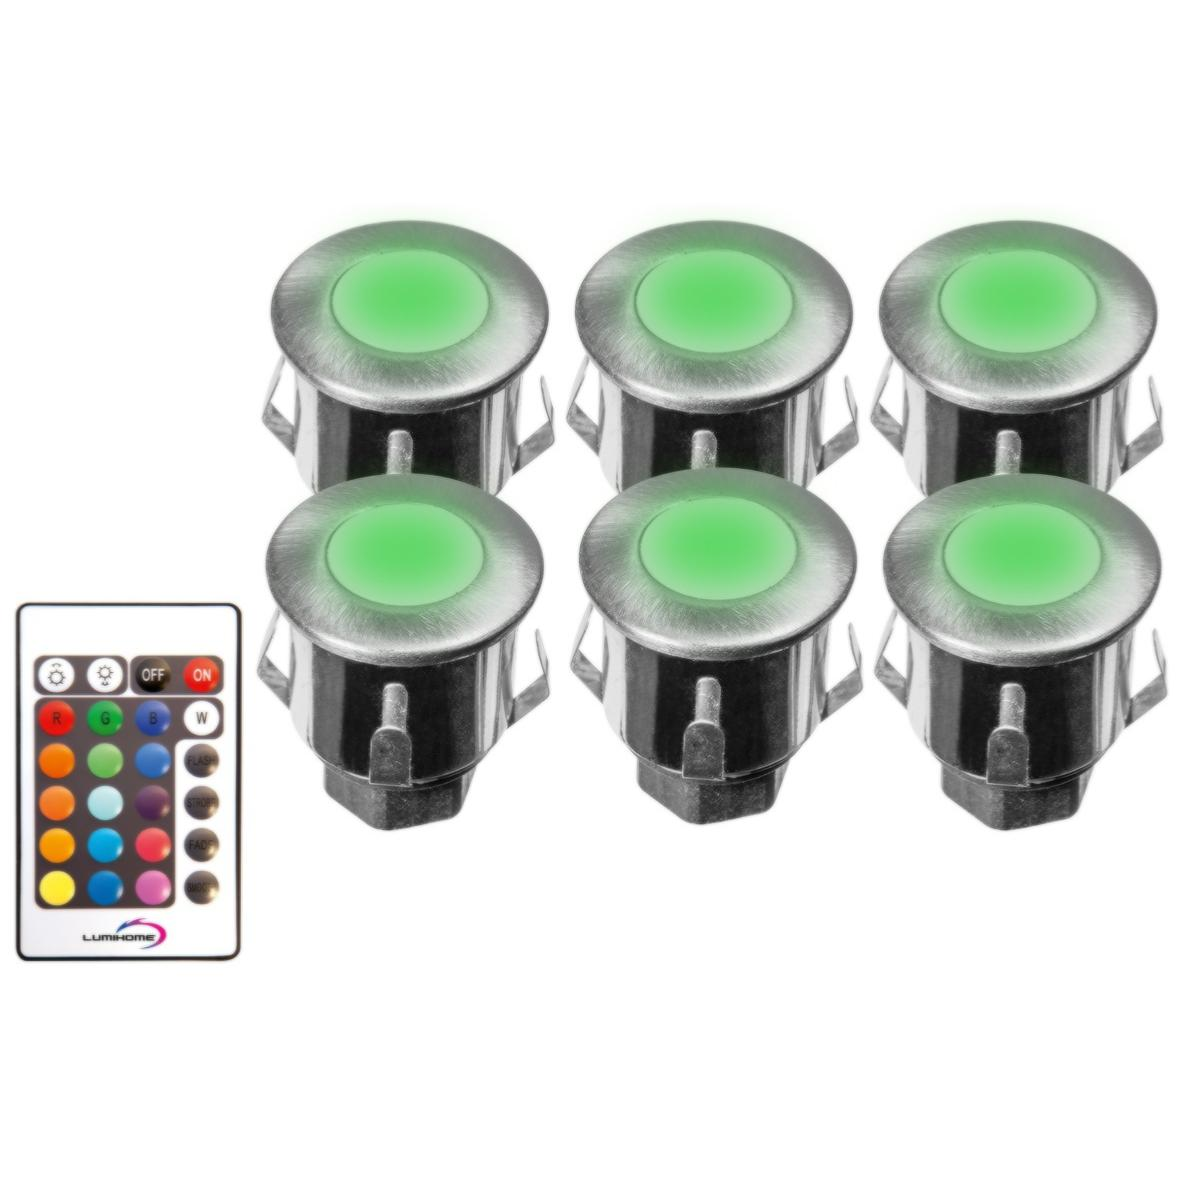 Spot terrasse piscine rgb 12v led ip67 kit de 6 spot led rgb for Spot led encastrable exterieur terrasse